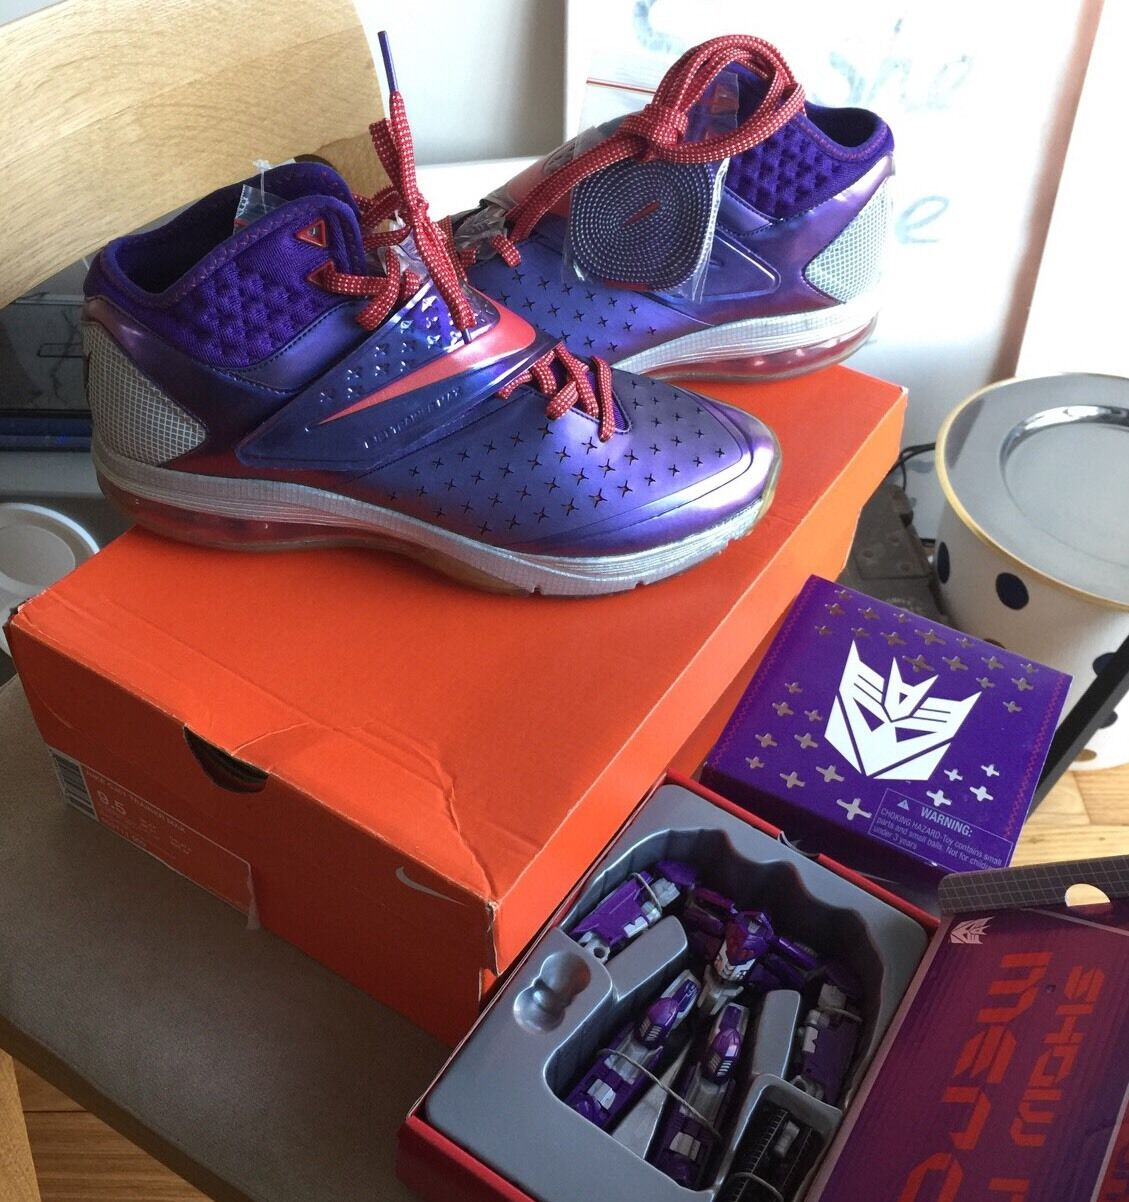 Megatron Nike CJ81 Trainer Max 9.5 9.5 9.5 w. Toy Transformers Air 90 95  Violet 3105af8be